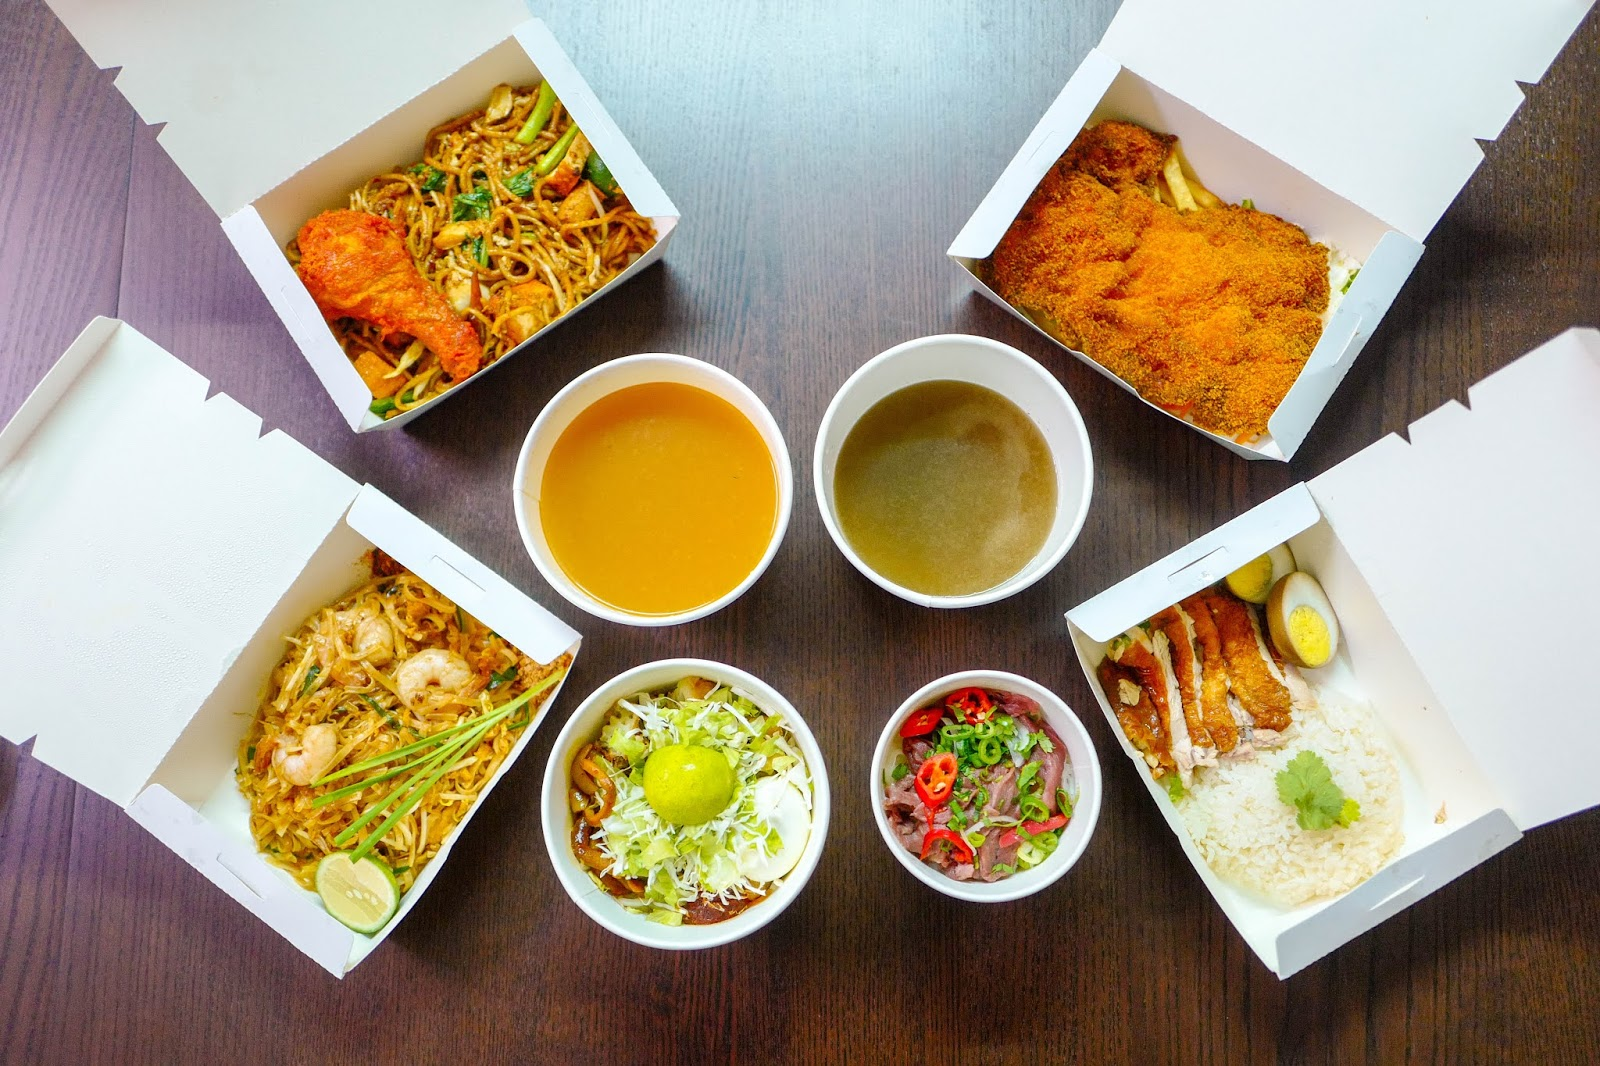 Food Republic Malaysia: All the top temptations of a food court, delivered to you